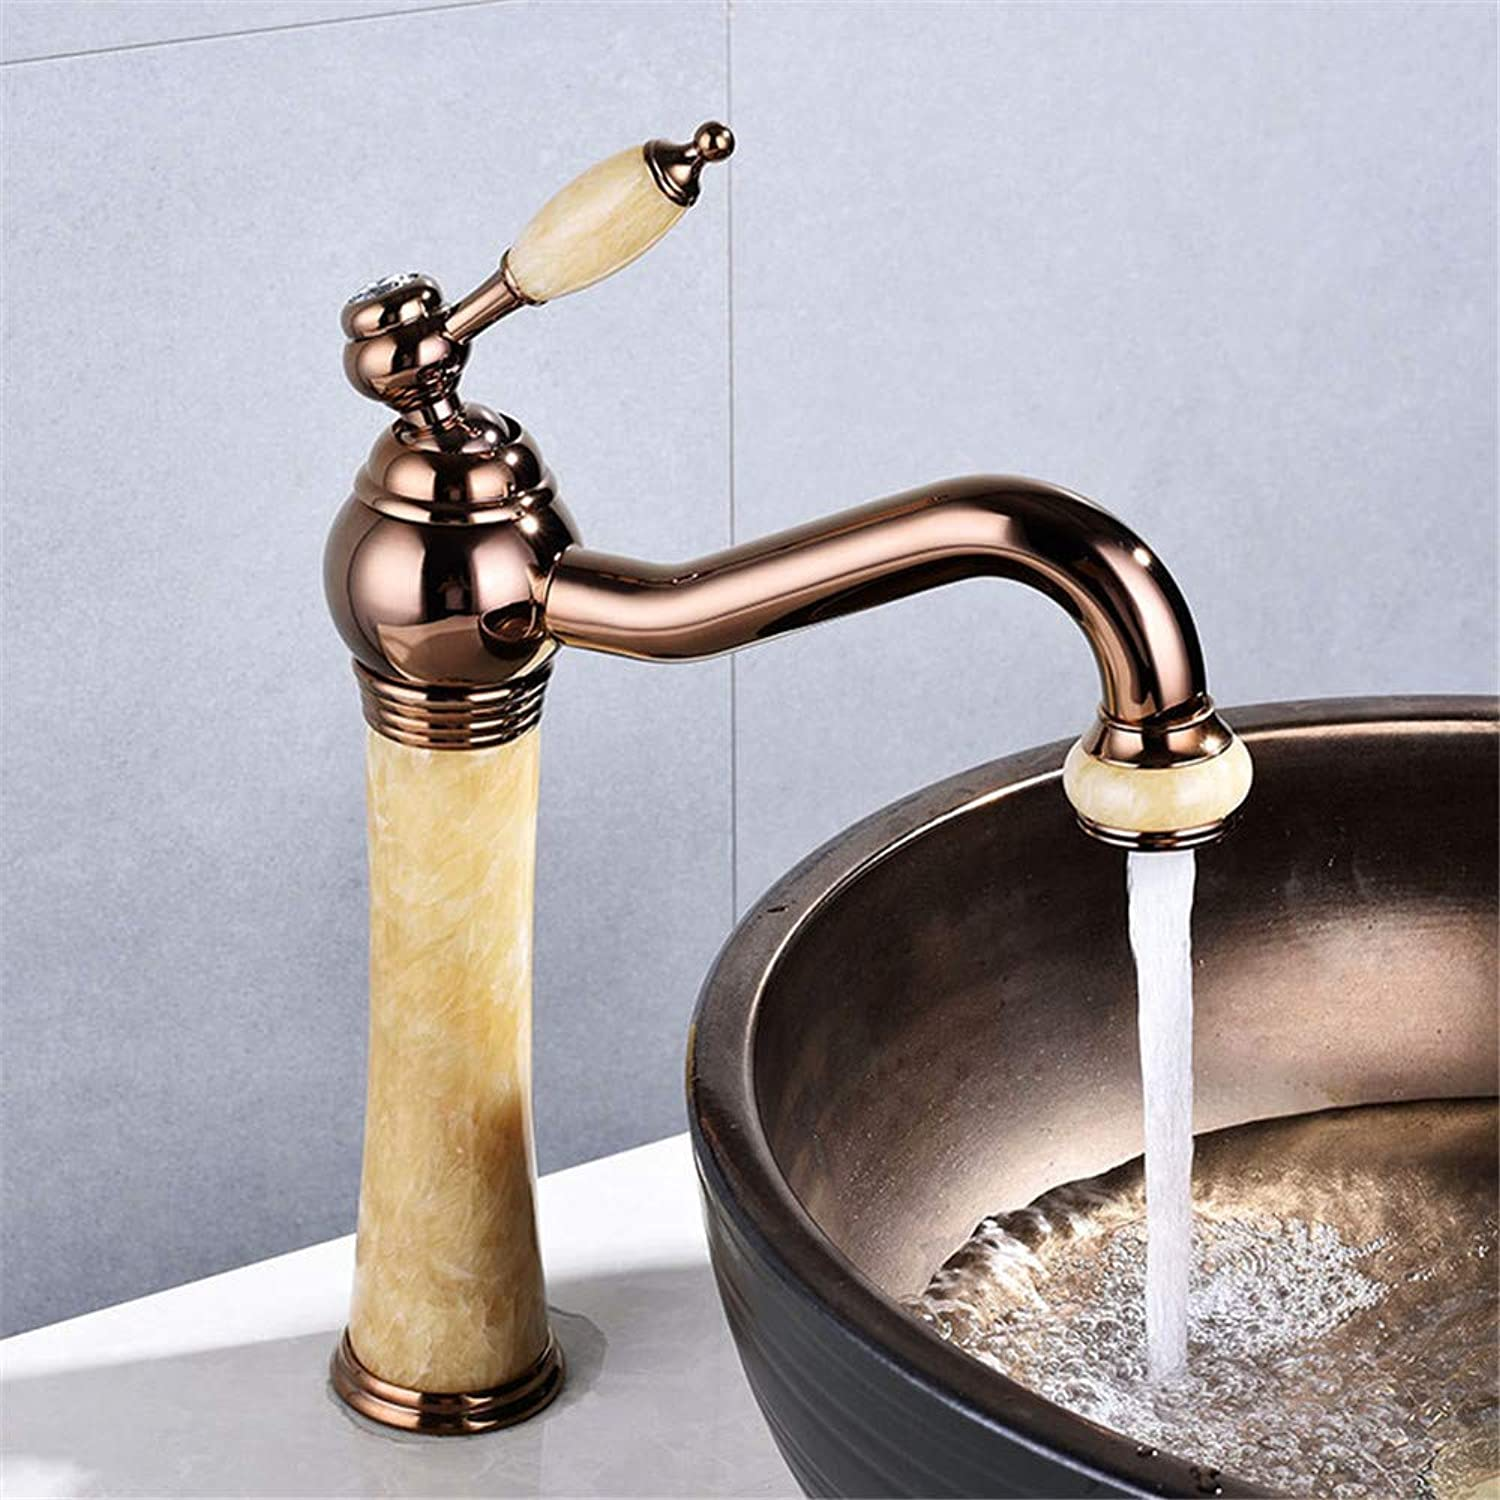 Oudan Basin Faucet pink gold Jade Bathroom Sink Faucet Hot and Cold Basin Jade Taps golden Faucet Marble Stone gold Brass Made Mixer (color   -, Size   -)